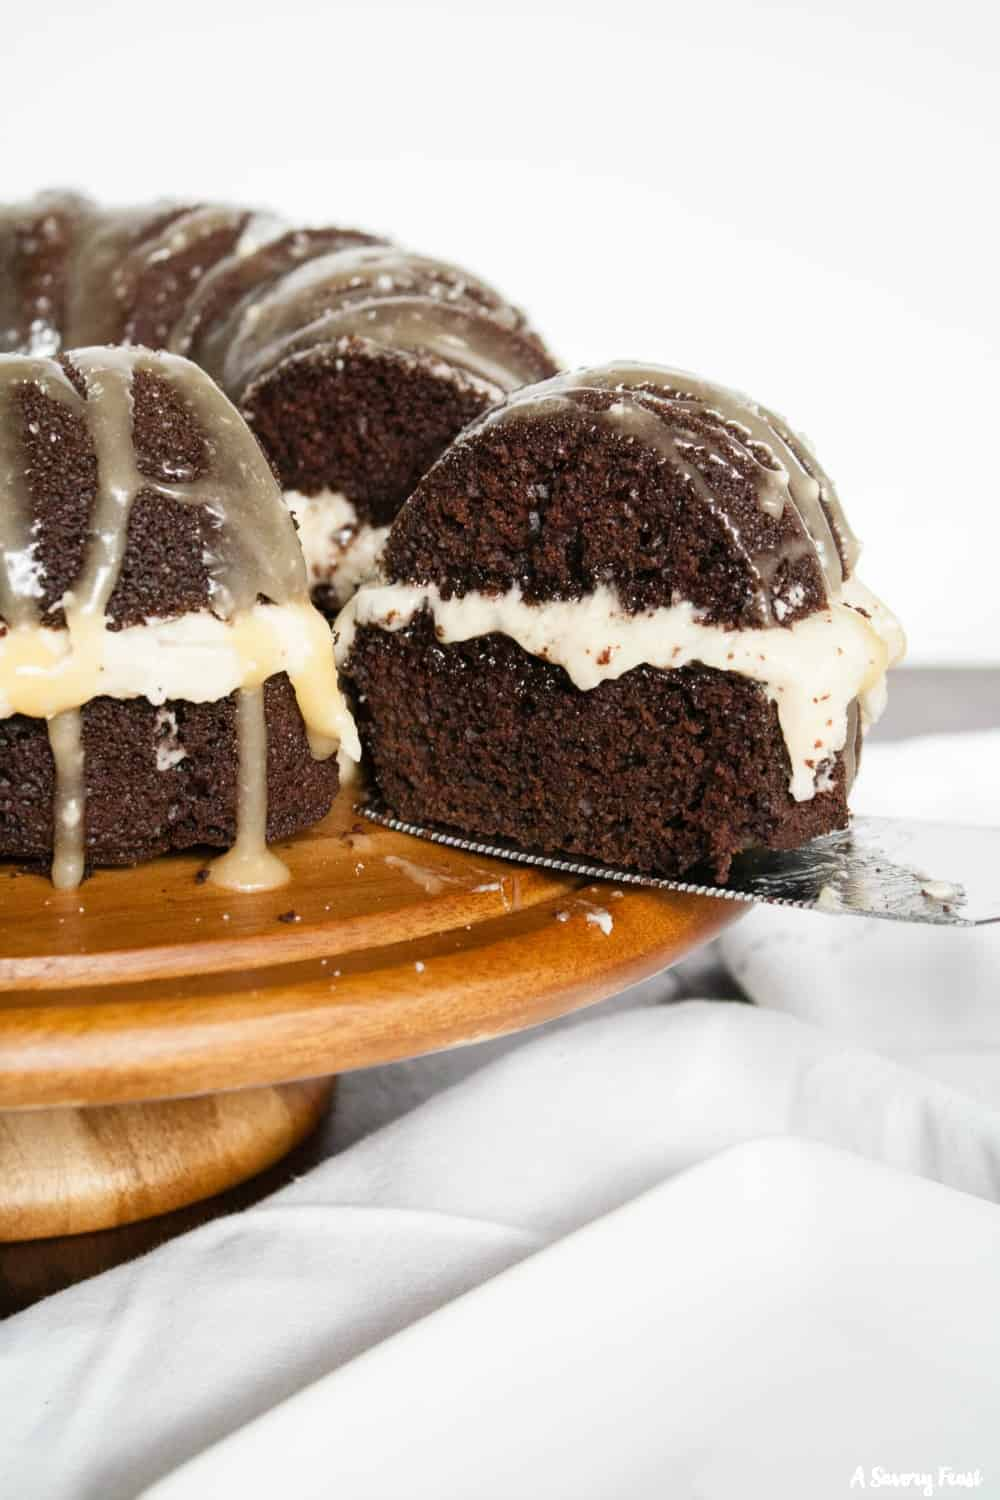 Chocolate bundt cake with caramel frosting.